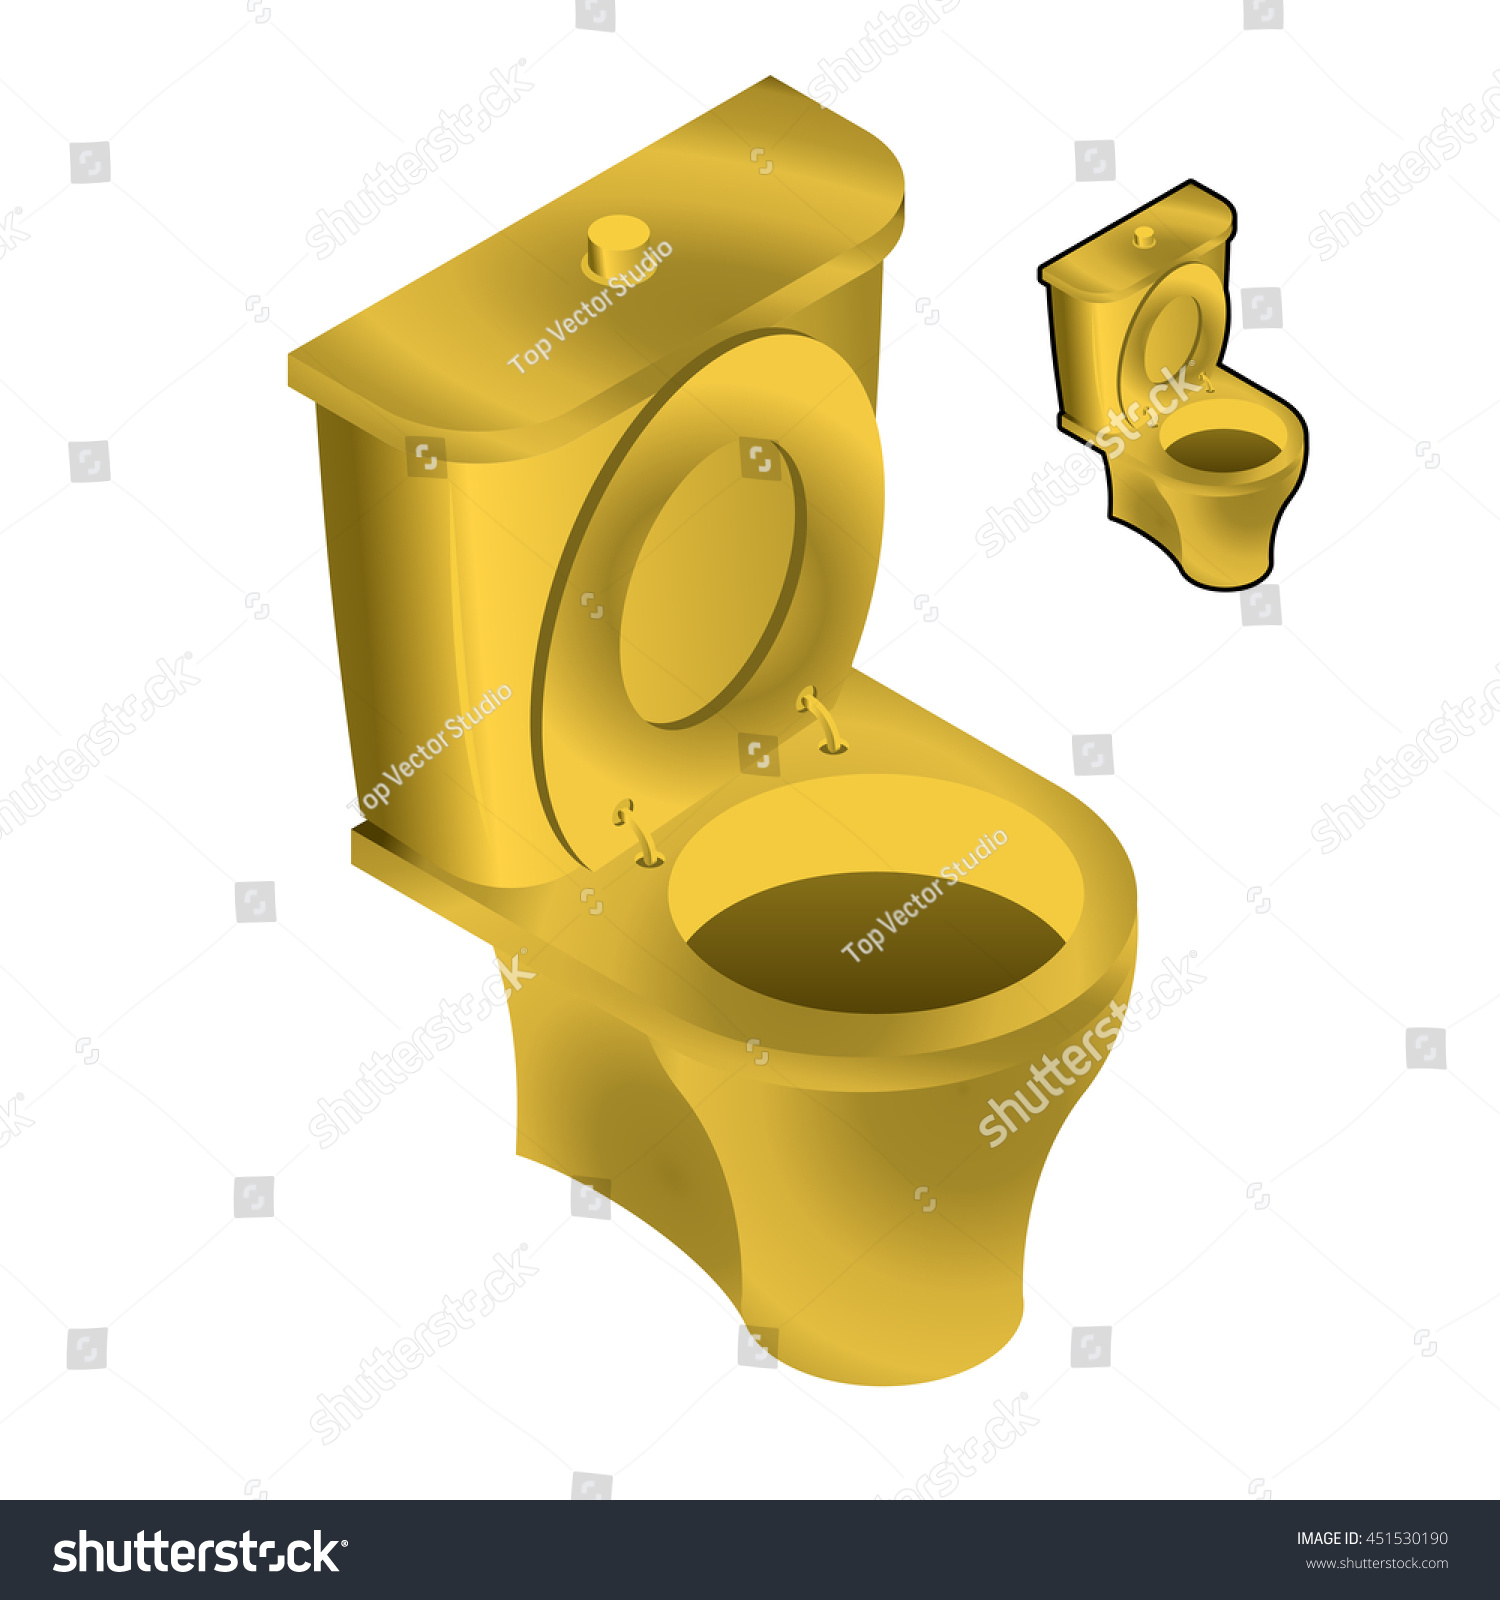 toilet made of gold. Gold Toilet Bowl Isometric Illustration On White Background Sink  made of gold Toilets And Other Dumb Things People Have Plated In NY Your